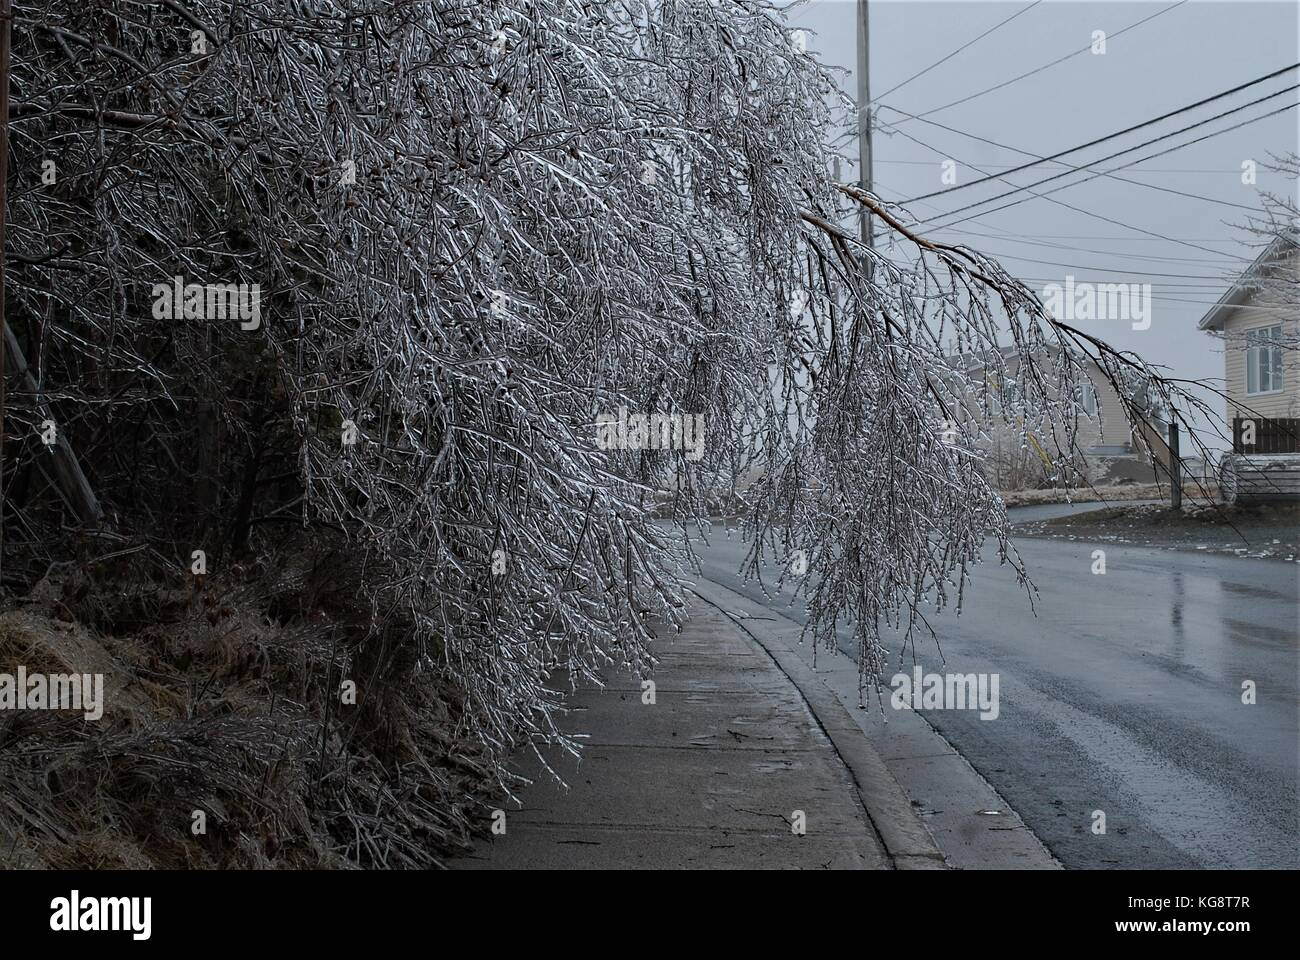 Thick ice on trees, during ice storm in Conception Bay South, Newfoundland Labrador, cause the branches to bend - Stock Image